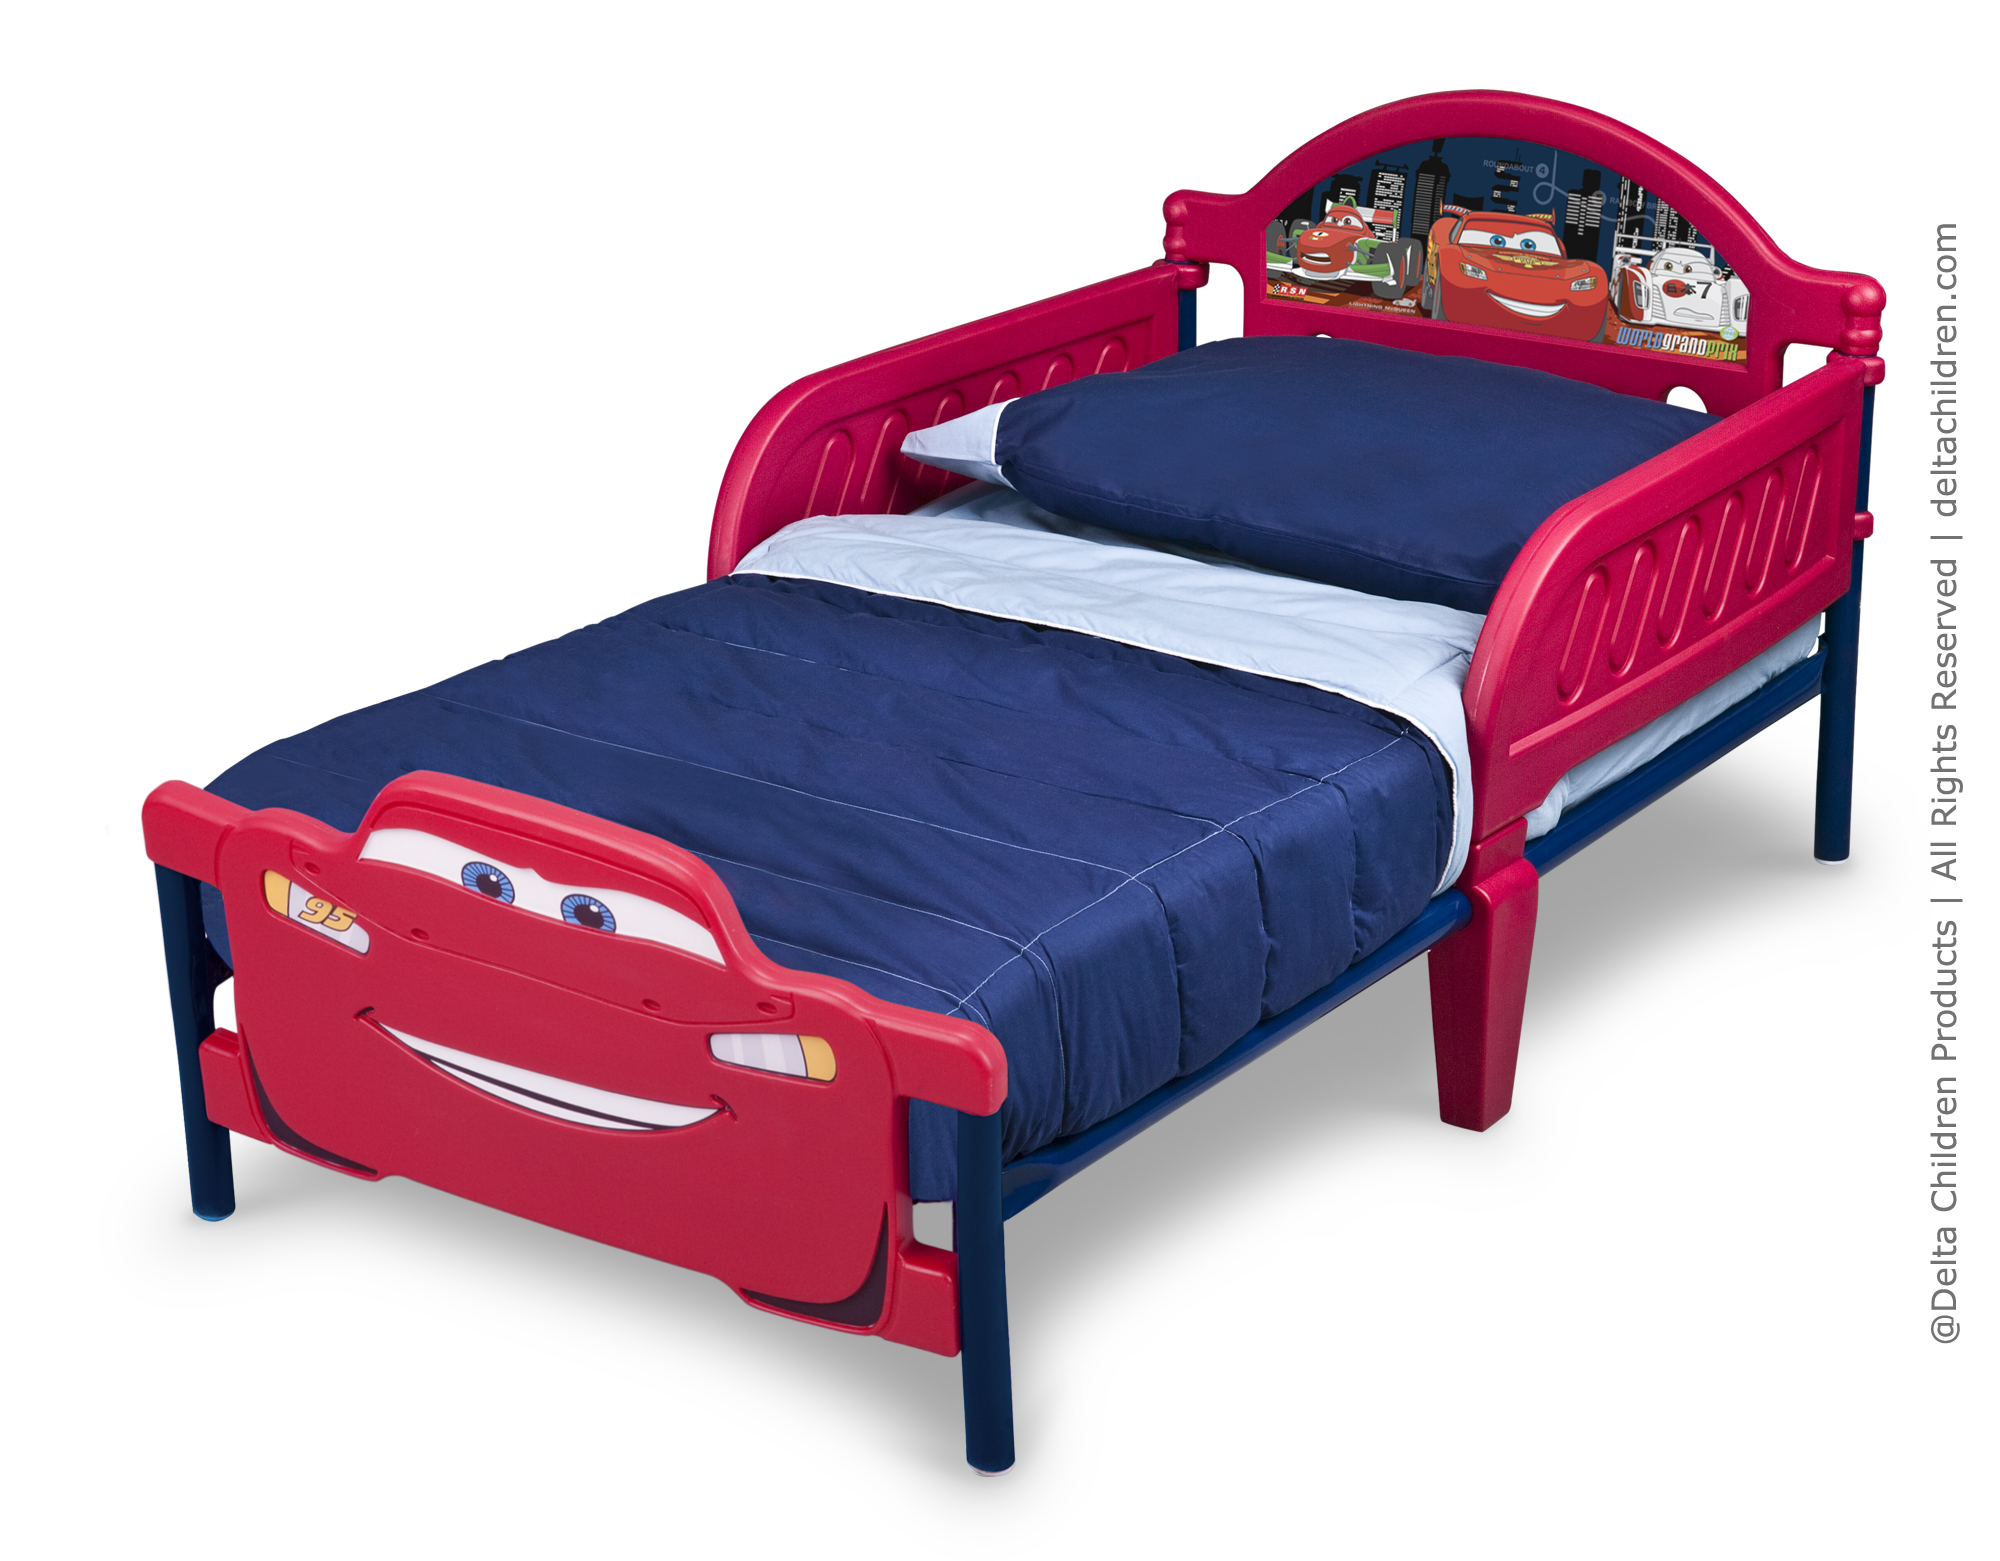 delta cars toddler bed instructions photo - 10